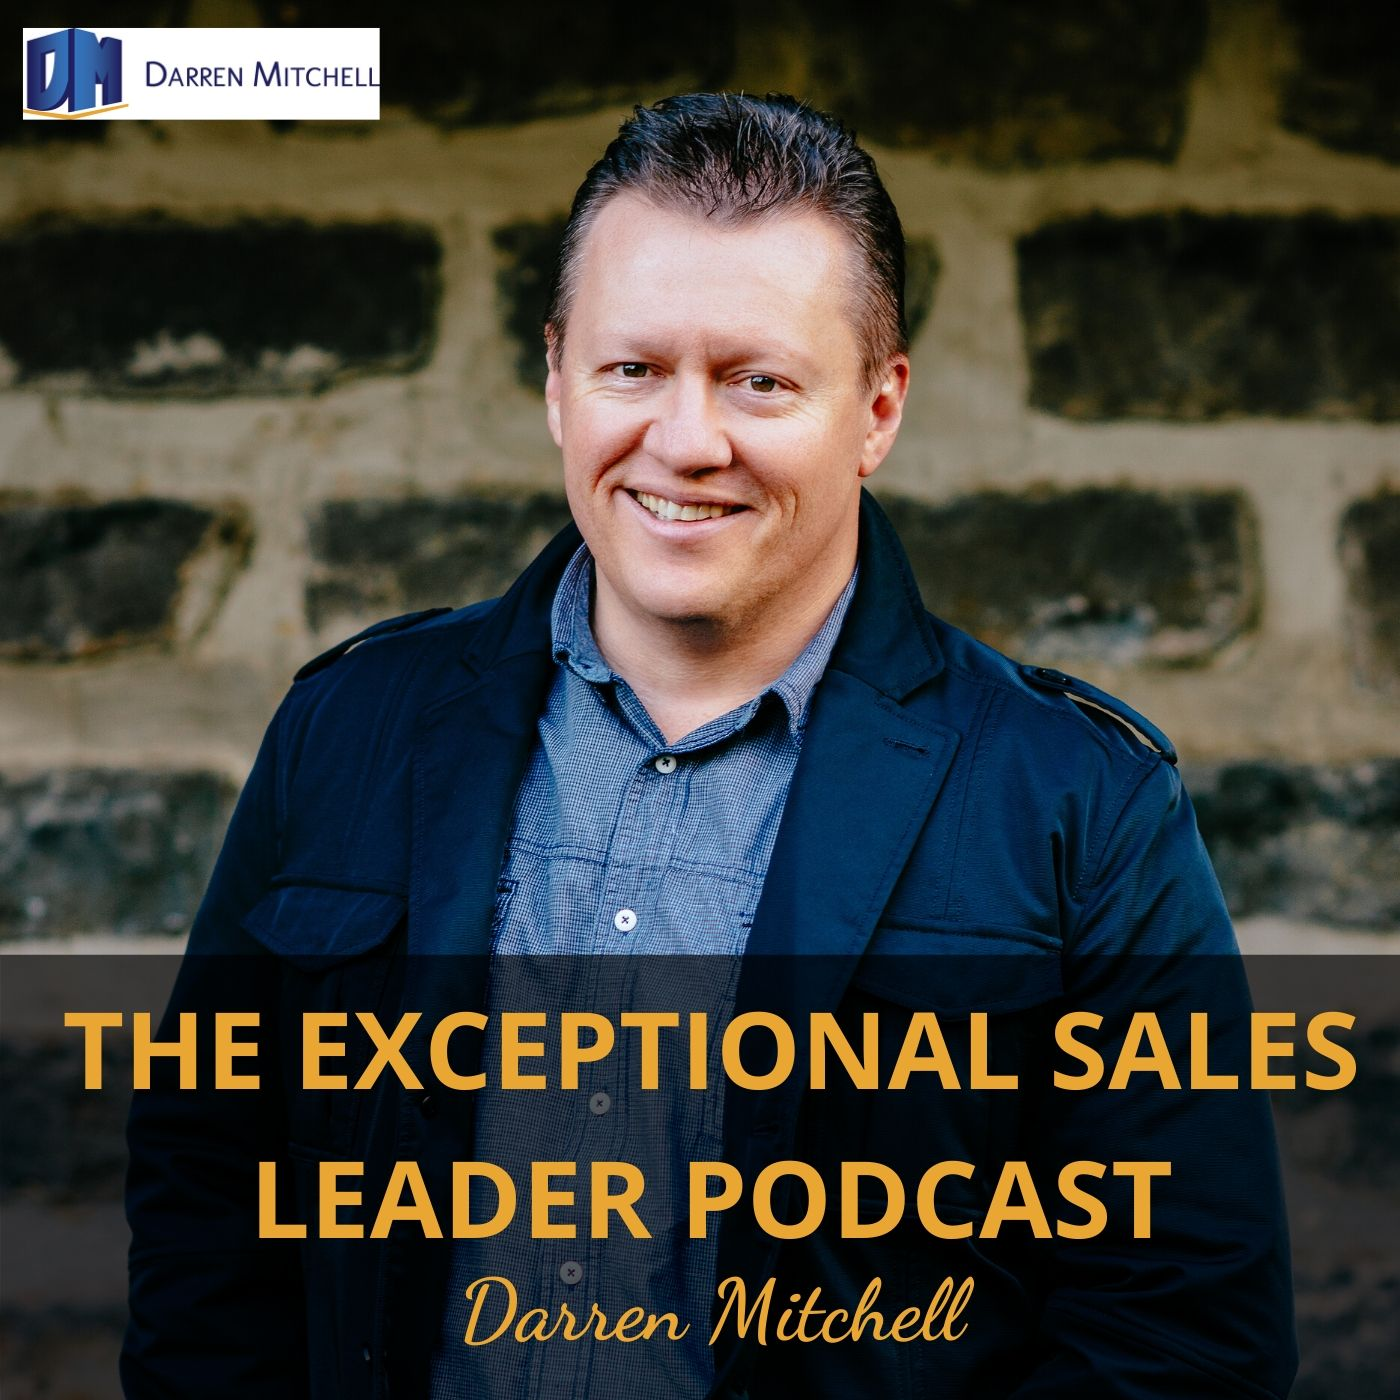 The Exceptional Sales Leader Podcast